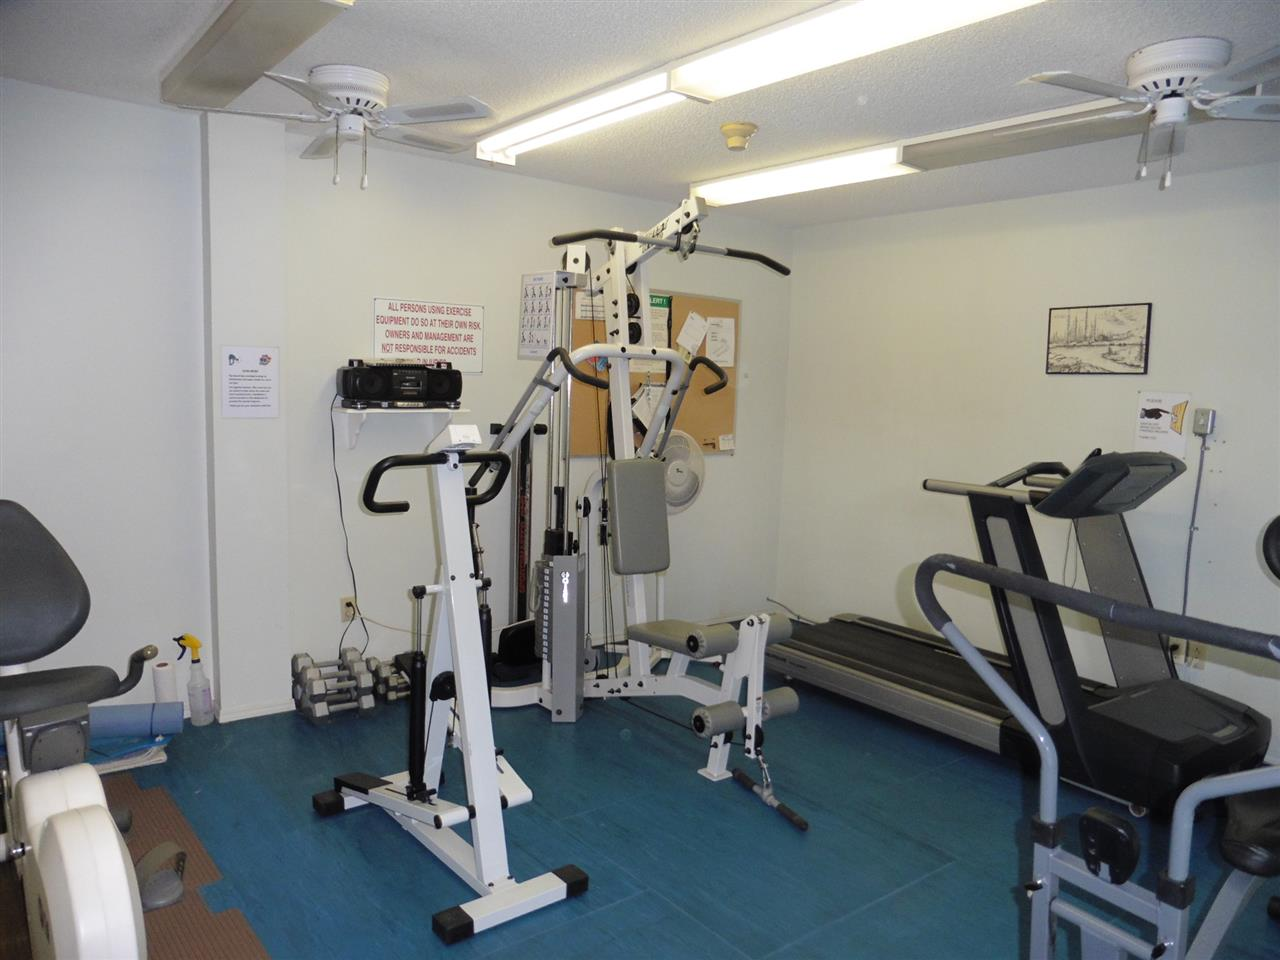 Exercise Room is located just off the pool area.